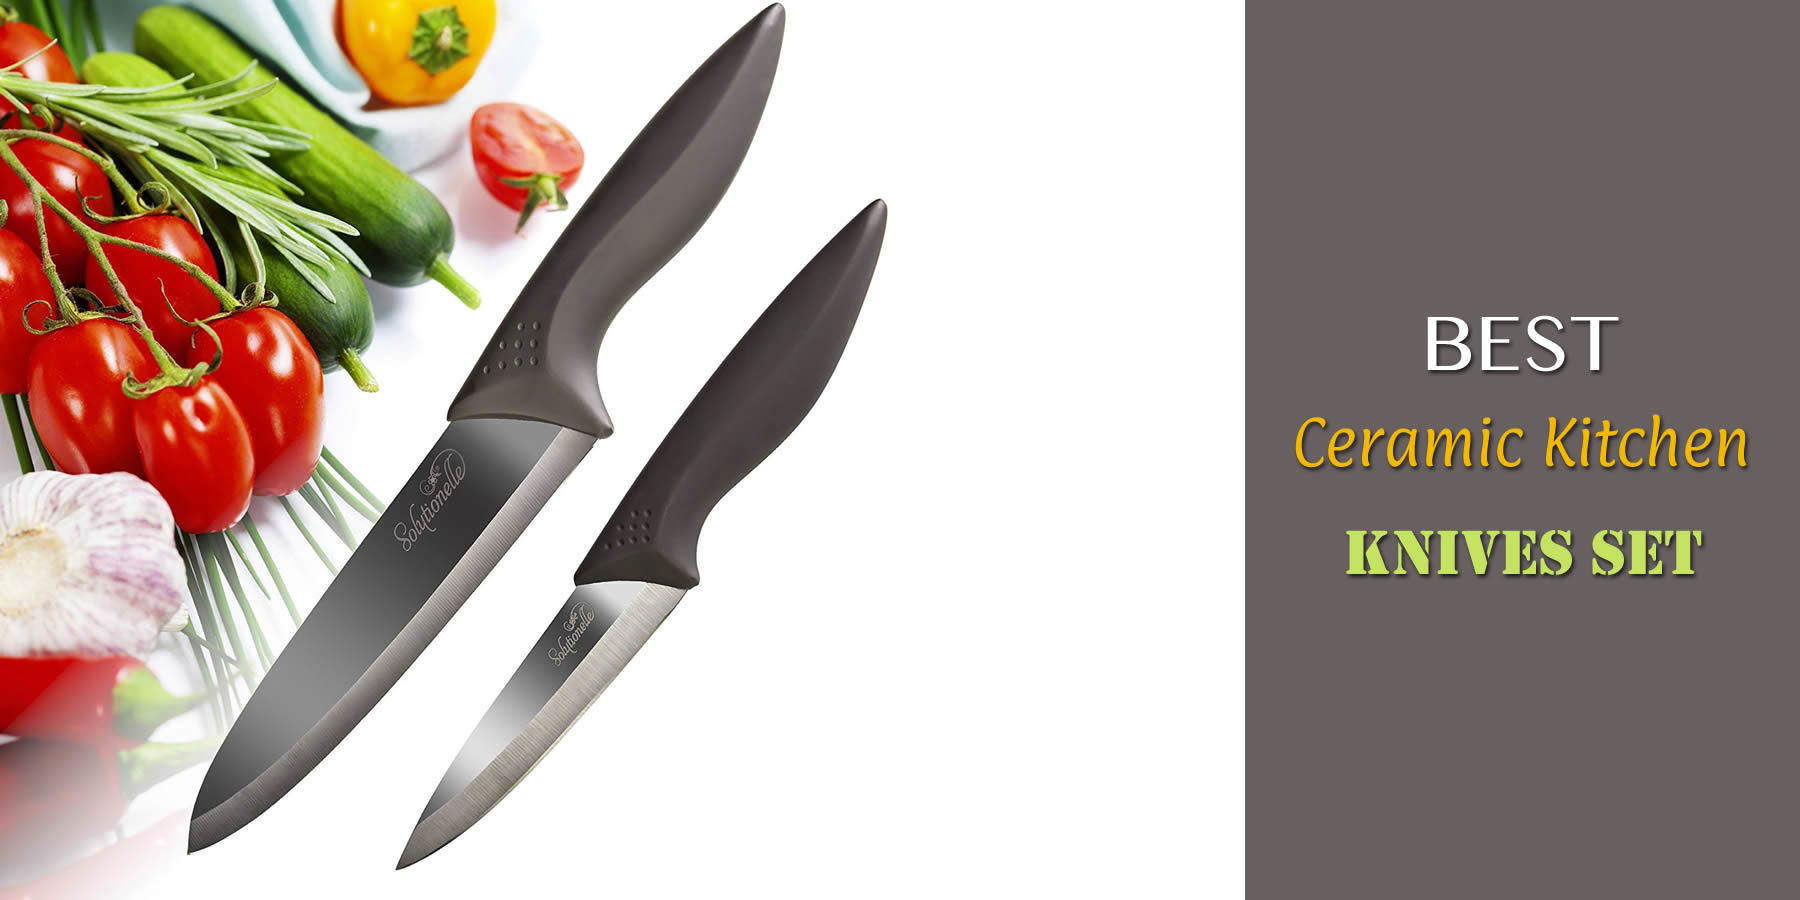 Best Ceramic Kitchen Knives Set Reviews And Guide For 2018